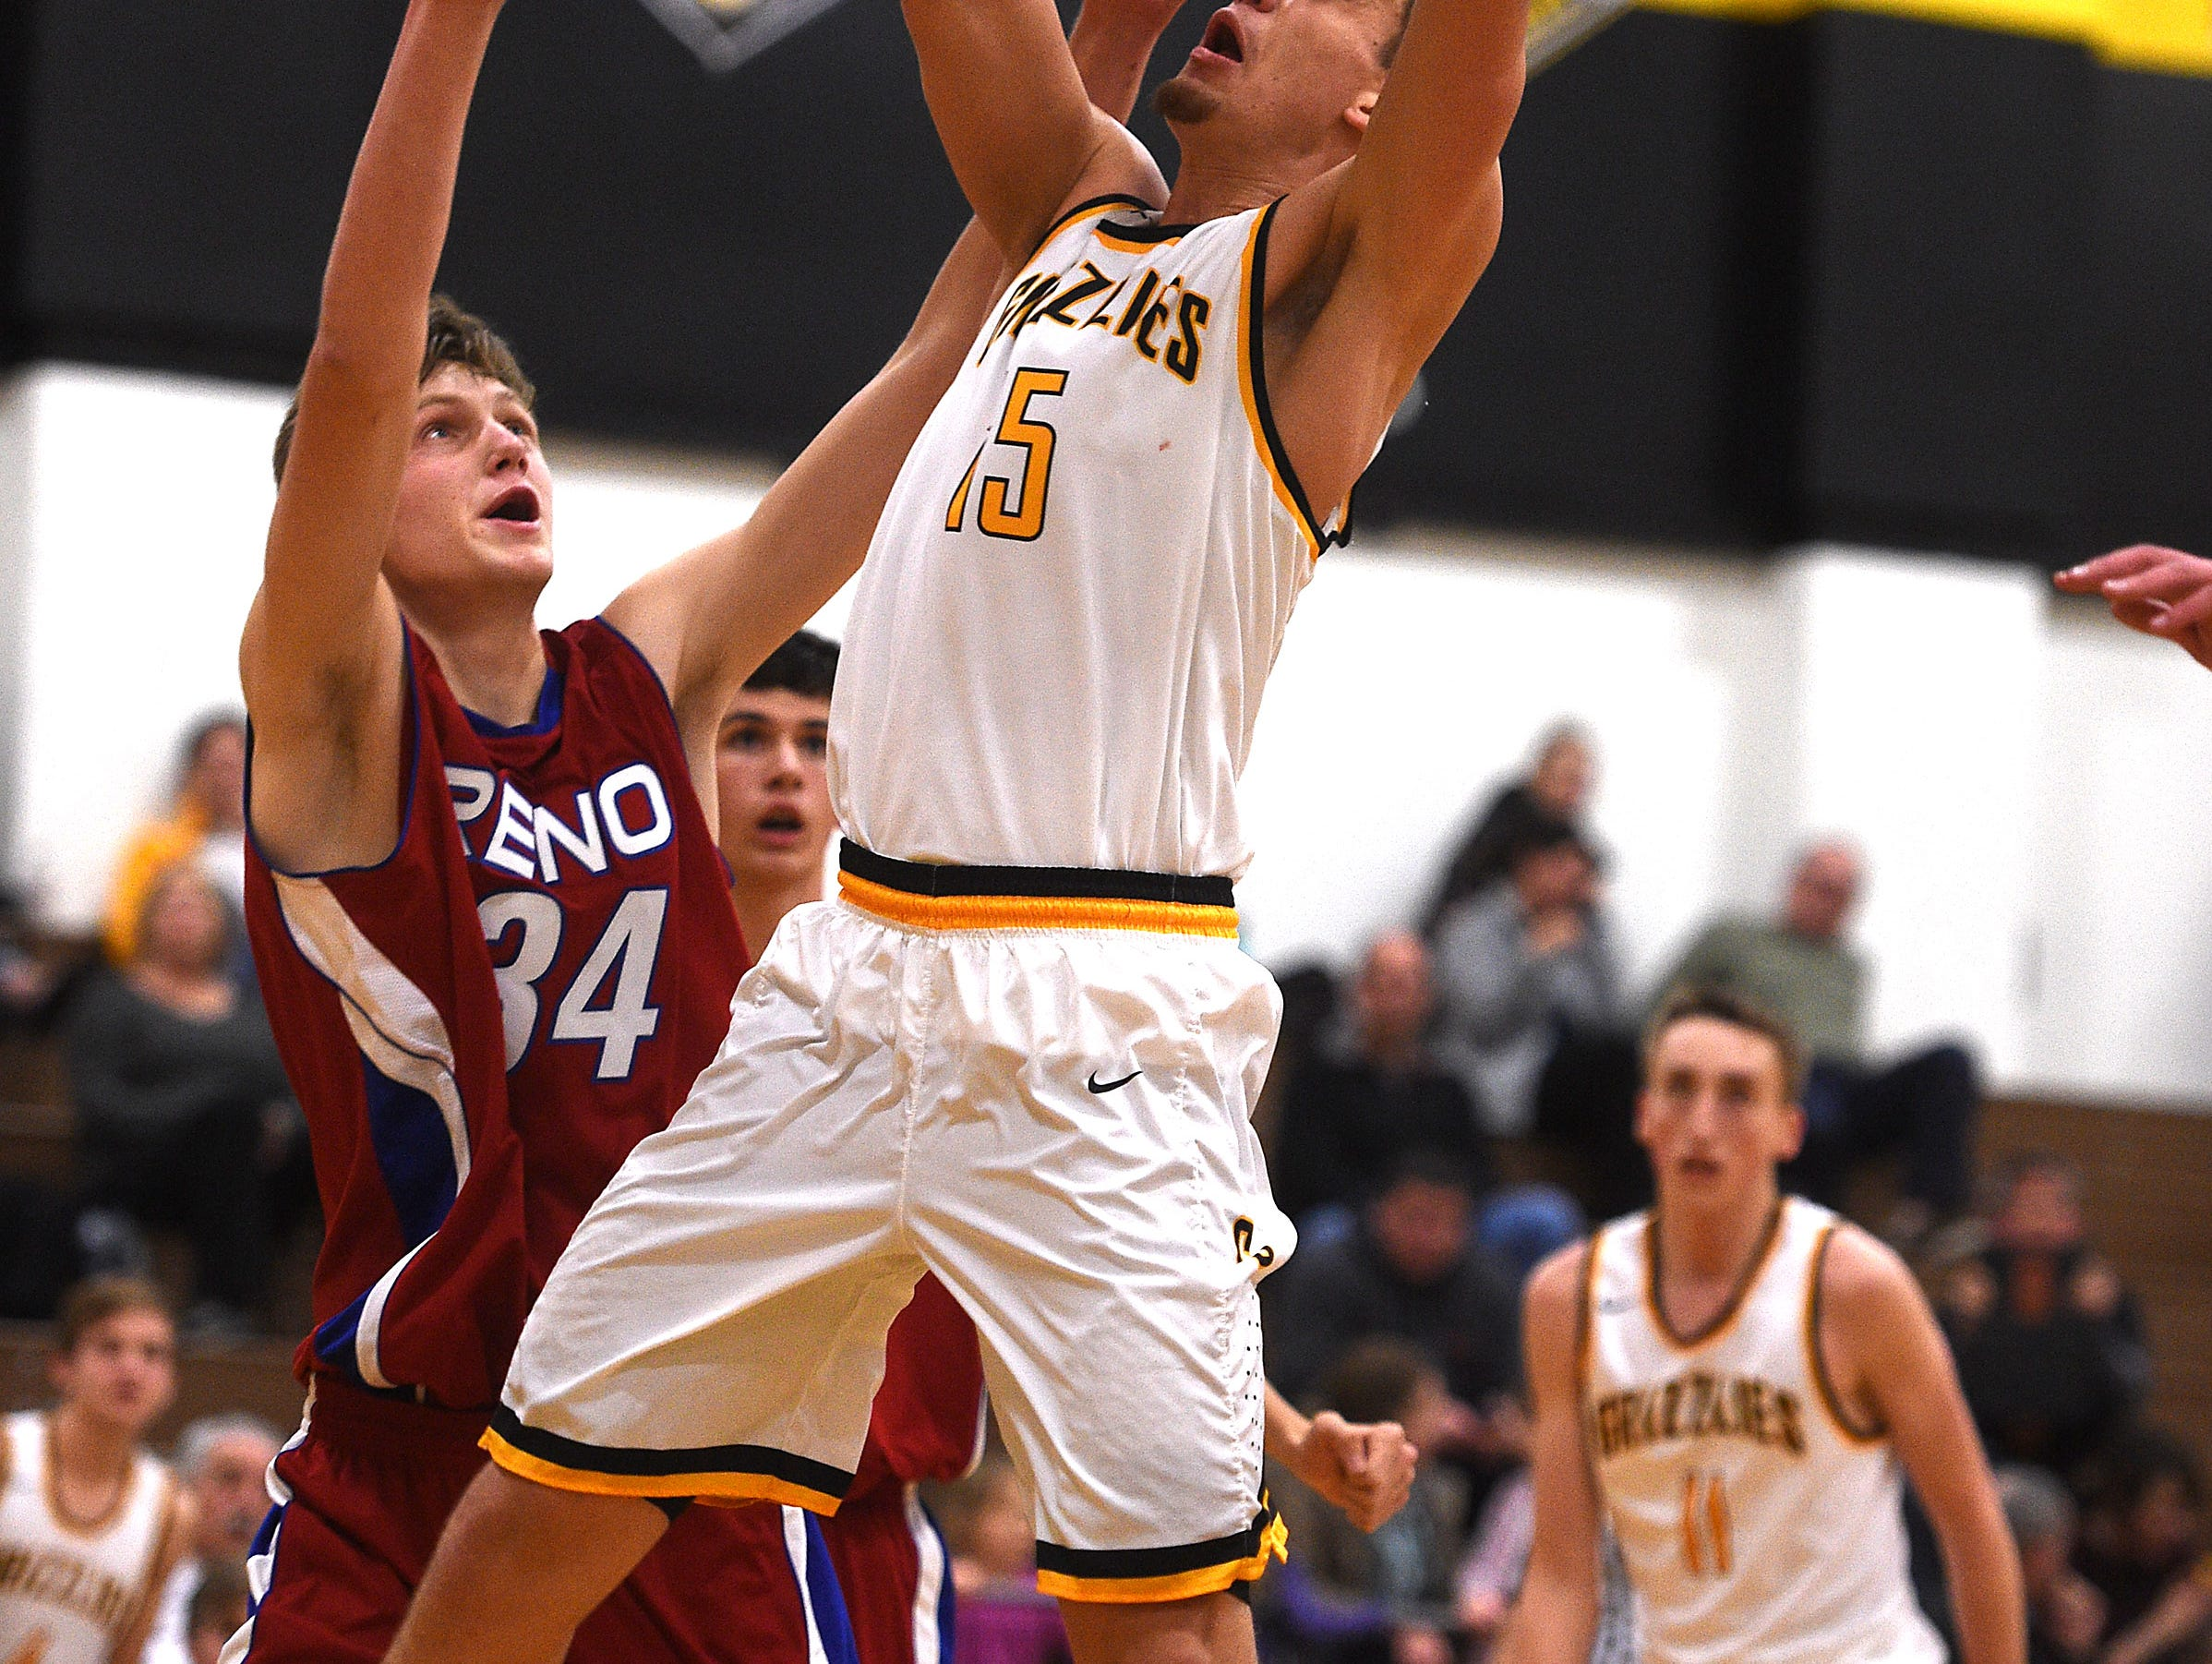 Galena's Dillon Voyles (15) shoots over Reno's Tommy Challis (34) during their basketball game on Jan. 3, 2017.